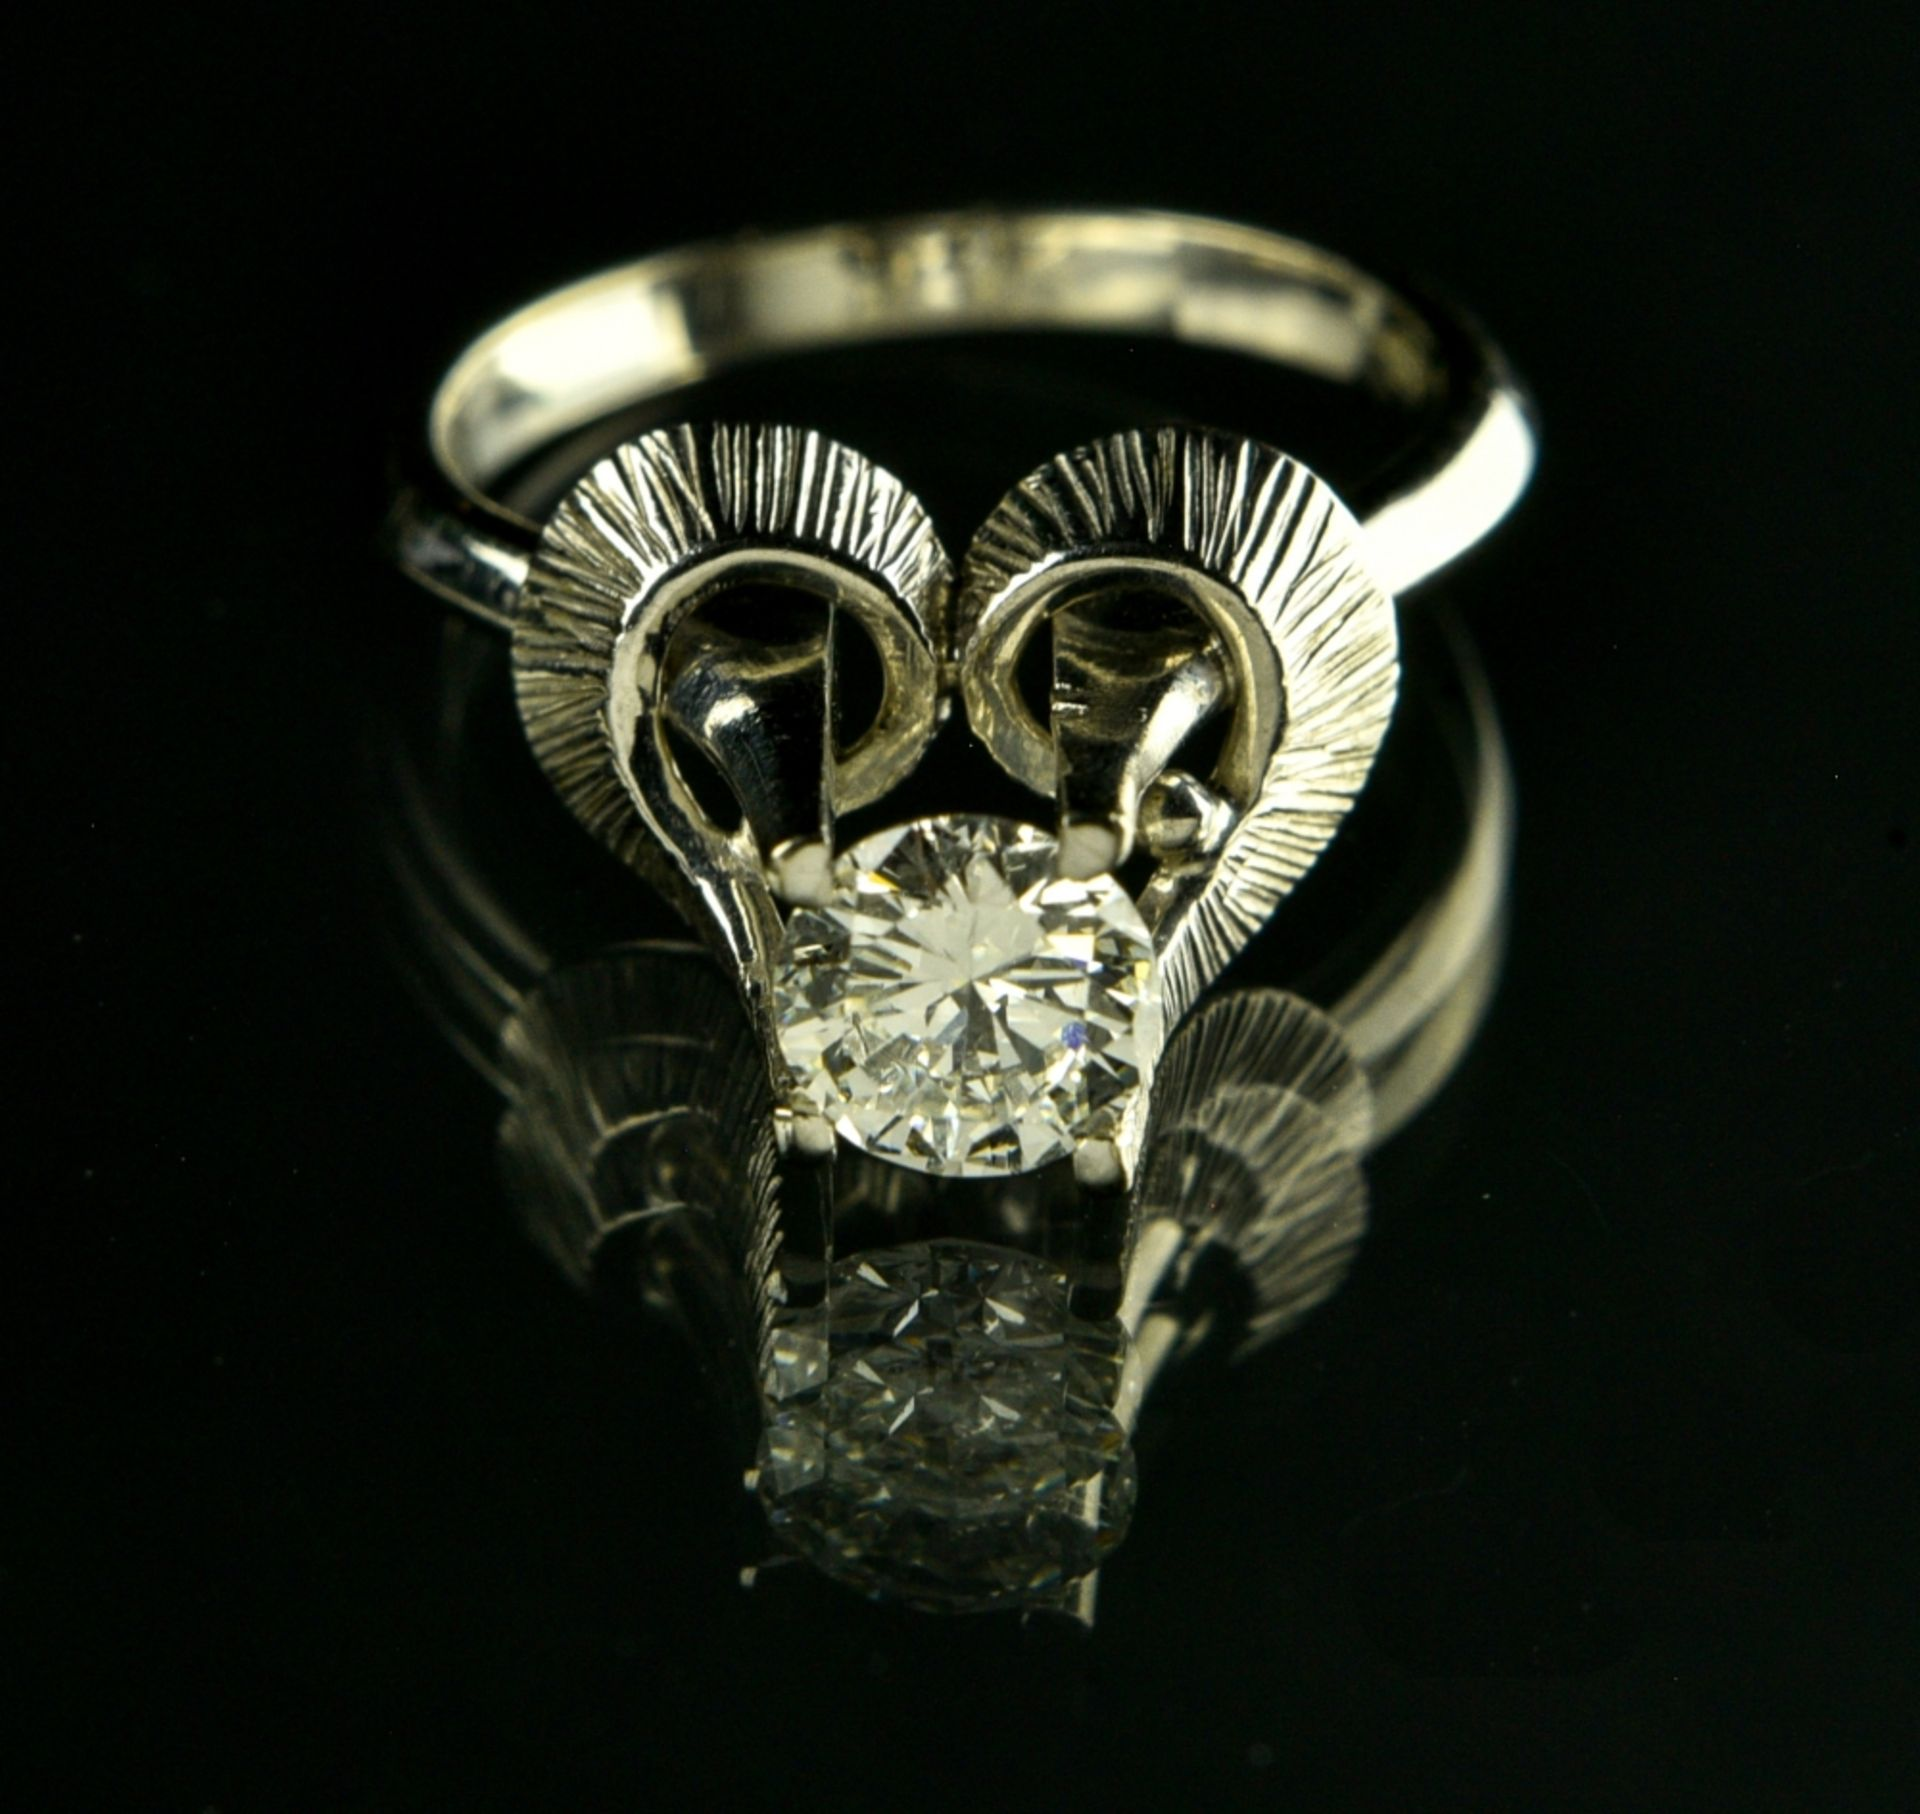 Solitaire ring RUSSIAN WORK, SOVIET ERA 18 kt white gold, set with a diamond weighing approx. 0.80